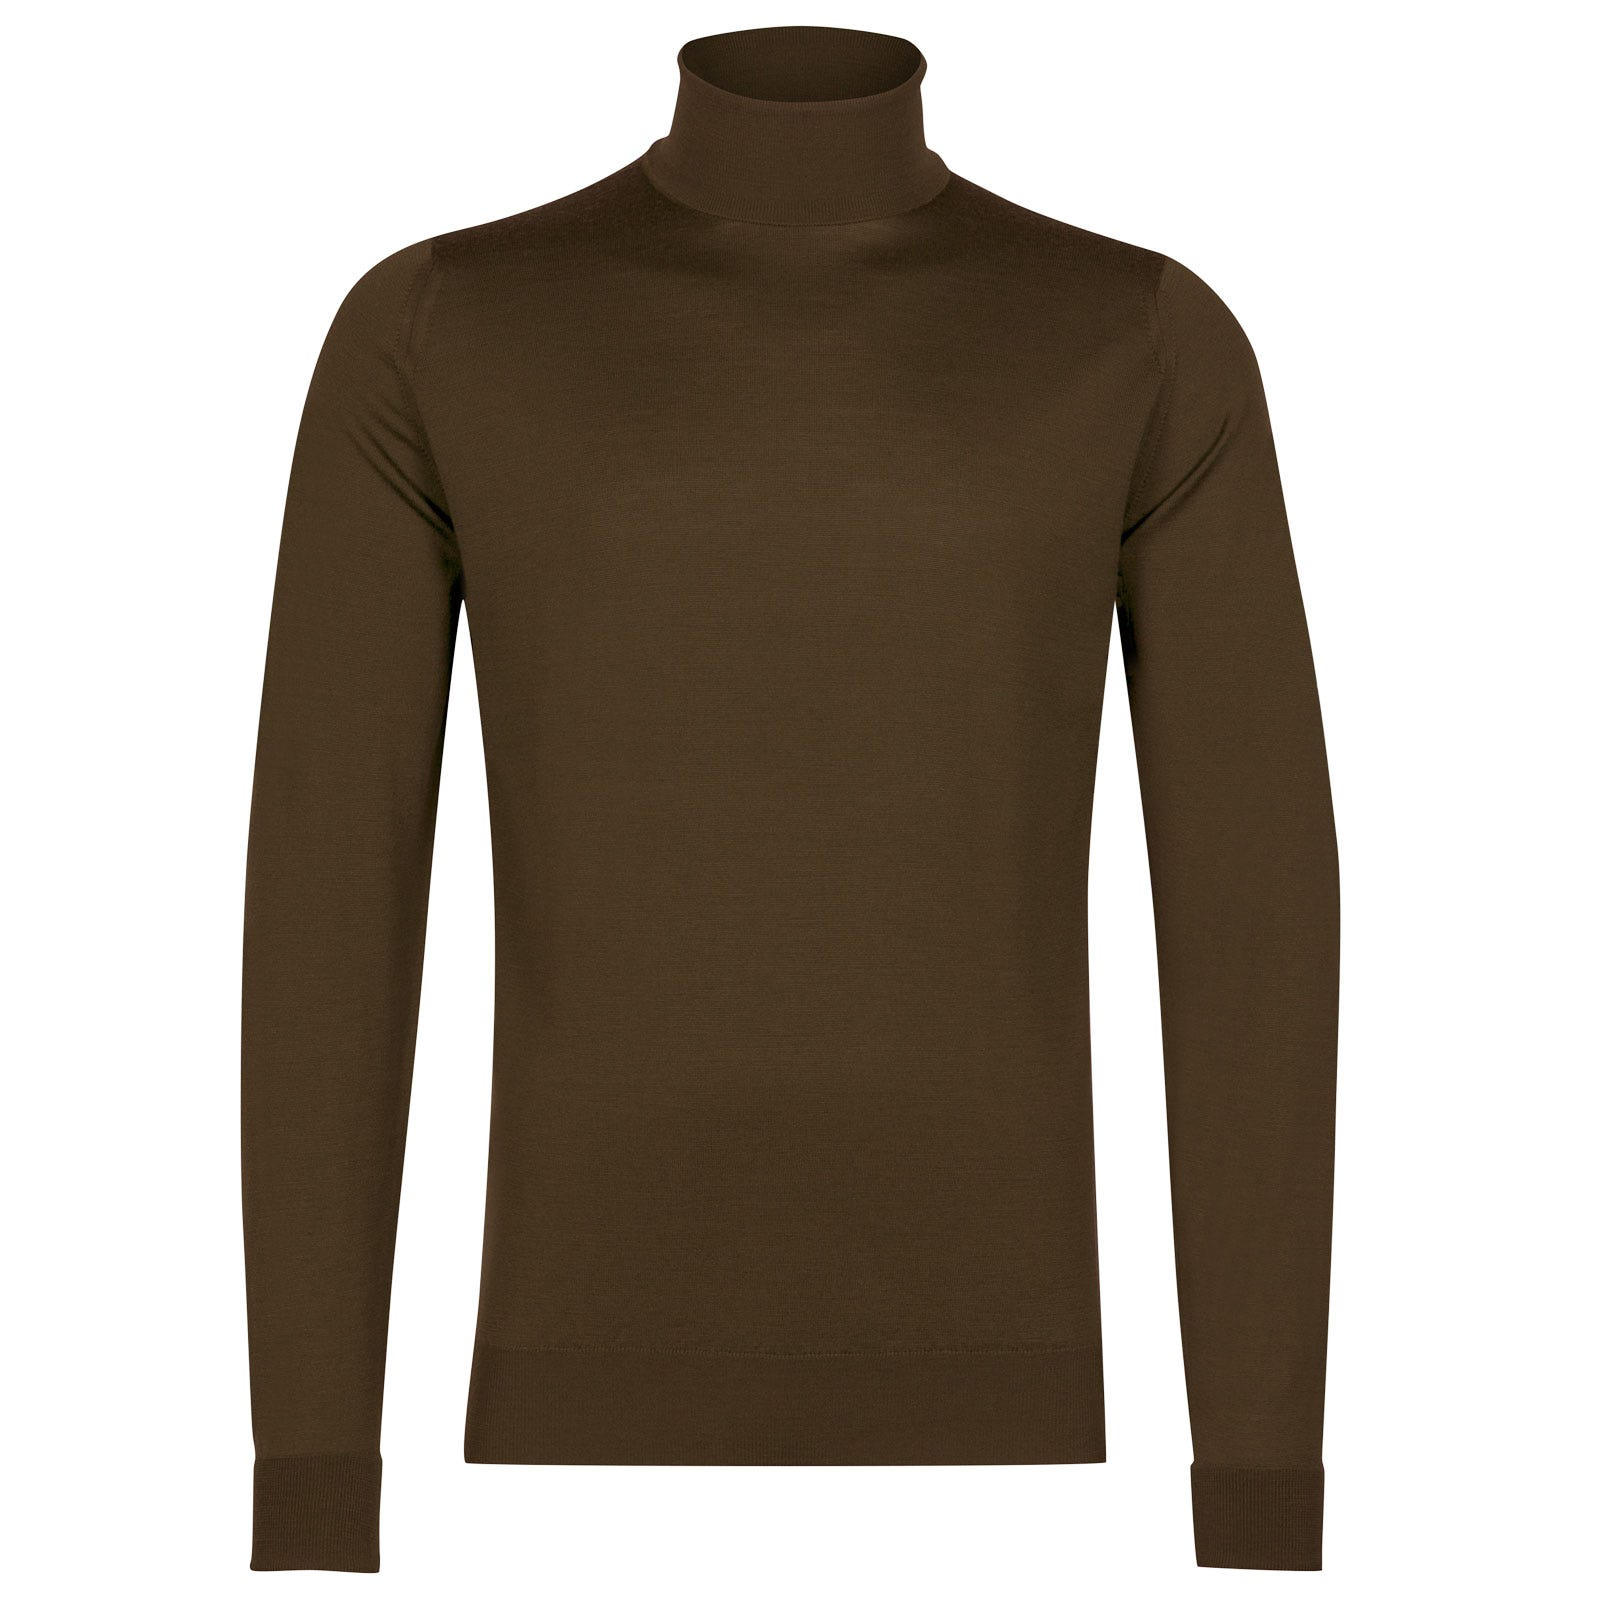 John Smedley richards Merino Wool Pullover in Kielder Green-XXL